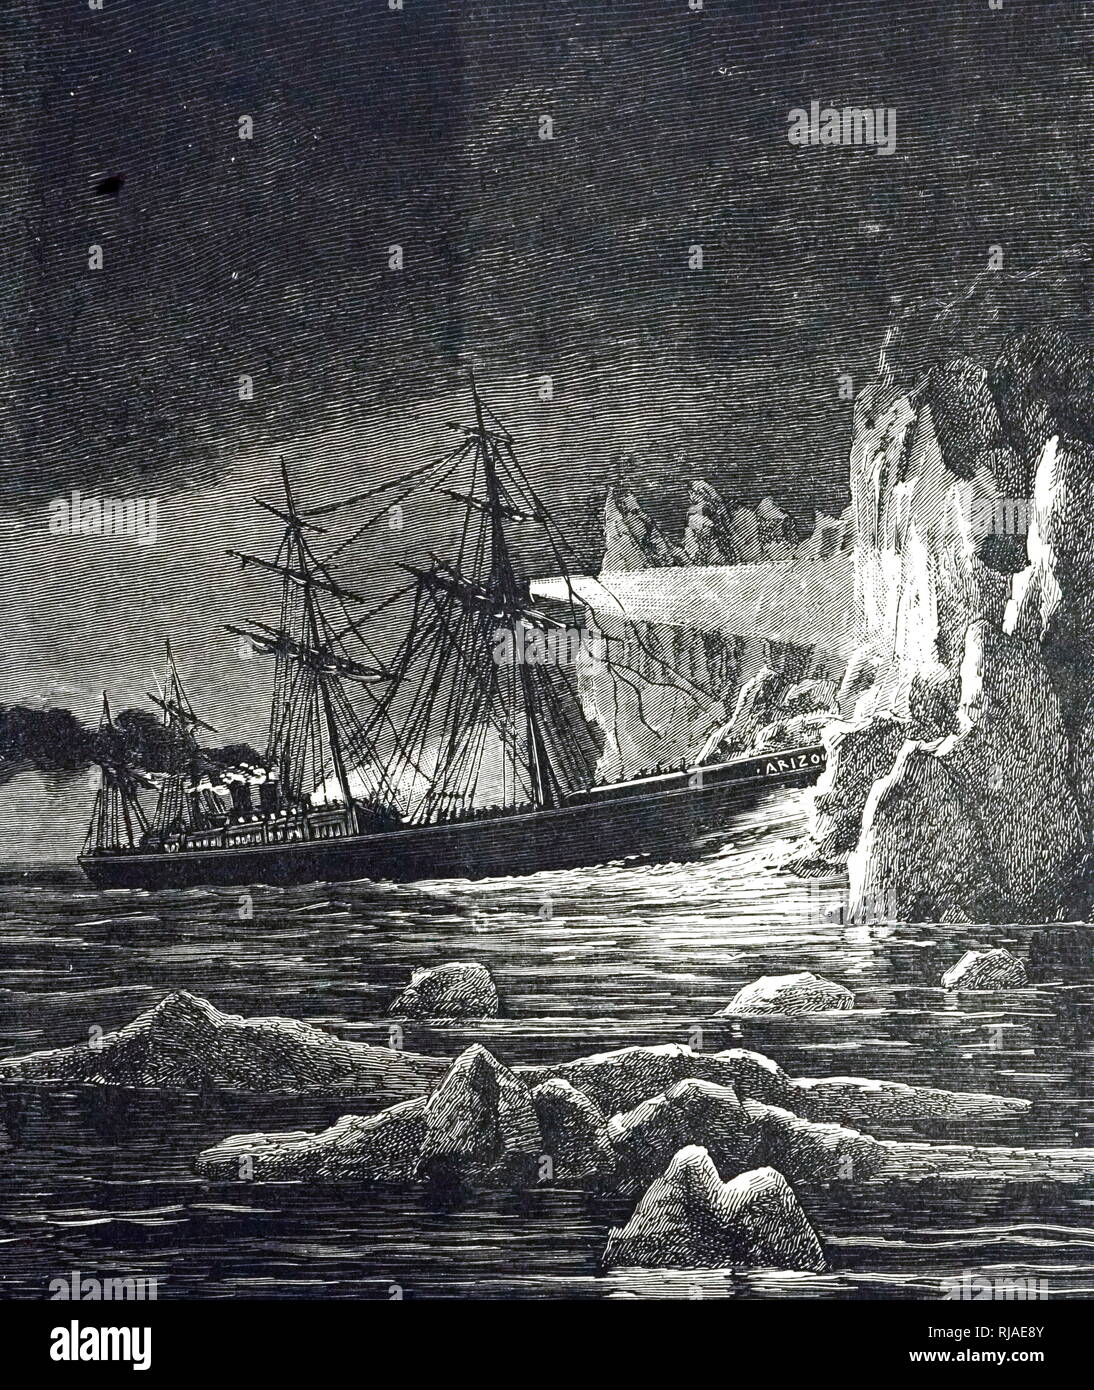 An engraving depicting the 'Arizona' striking an iceberg at night about 300 miles from St John's in 1879. The ship was in good enough condition to make her way back to Newfoundland for repairs. Dated 19th century - Stock Image